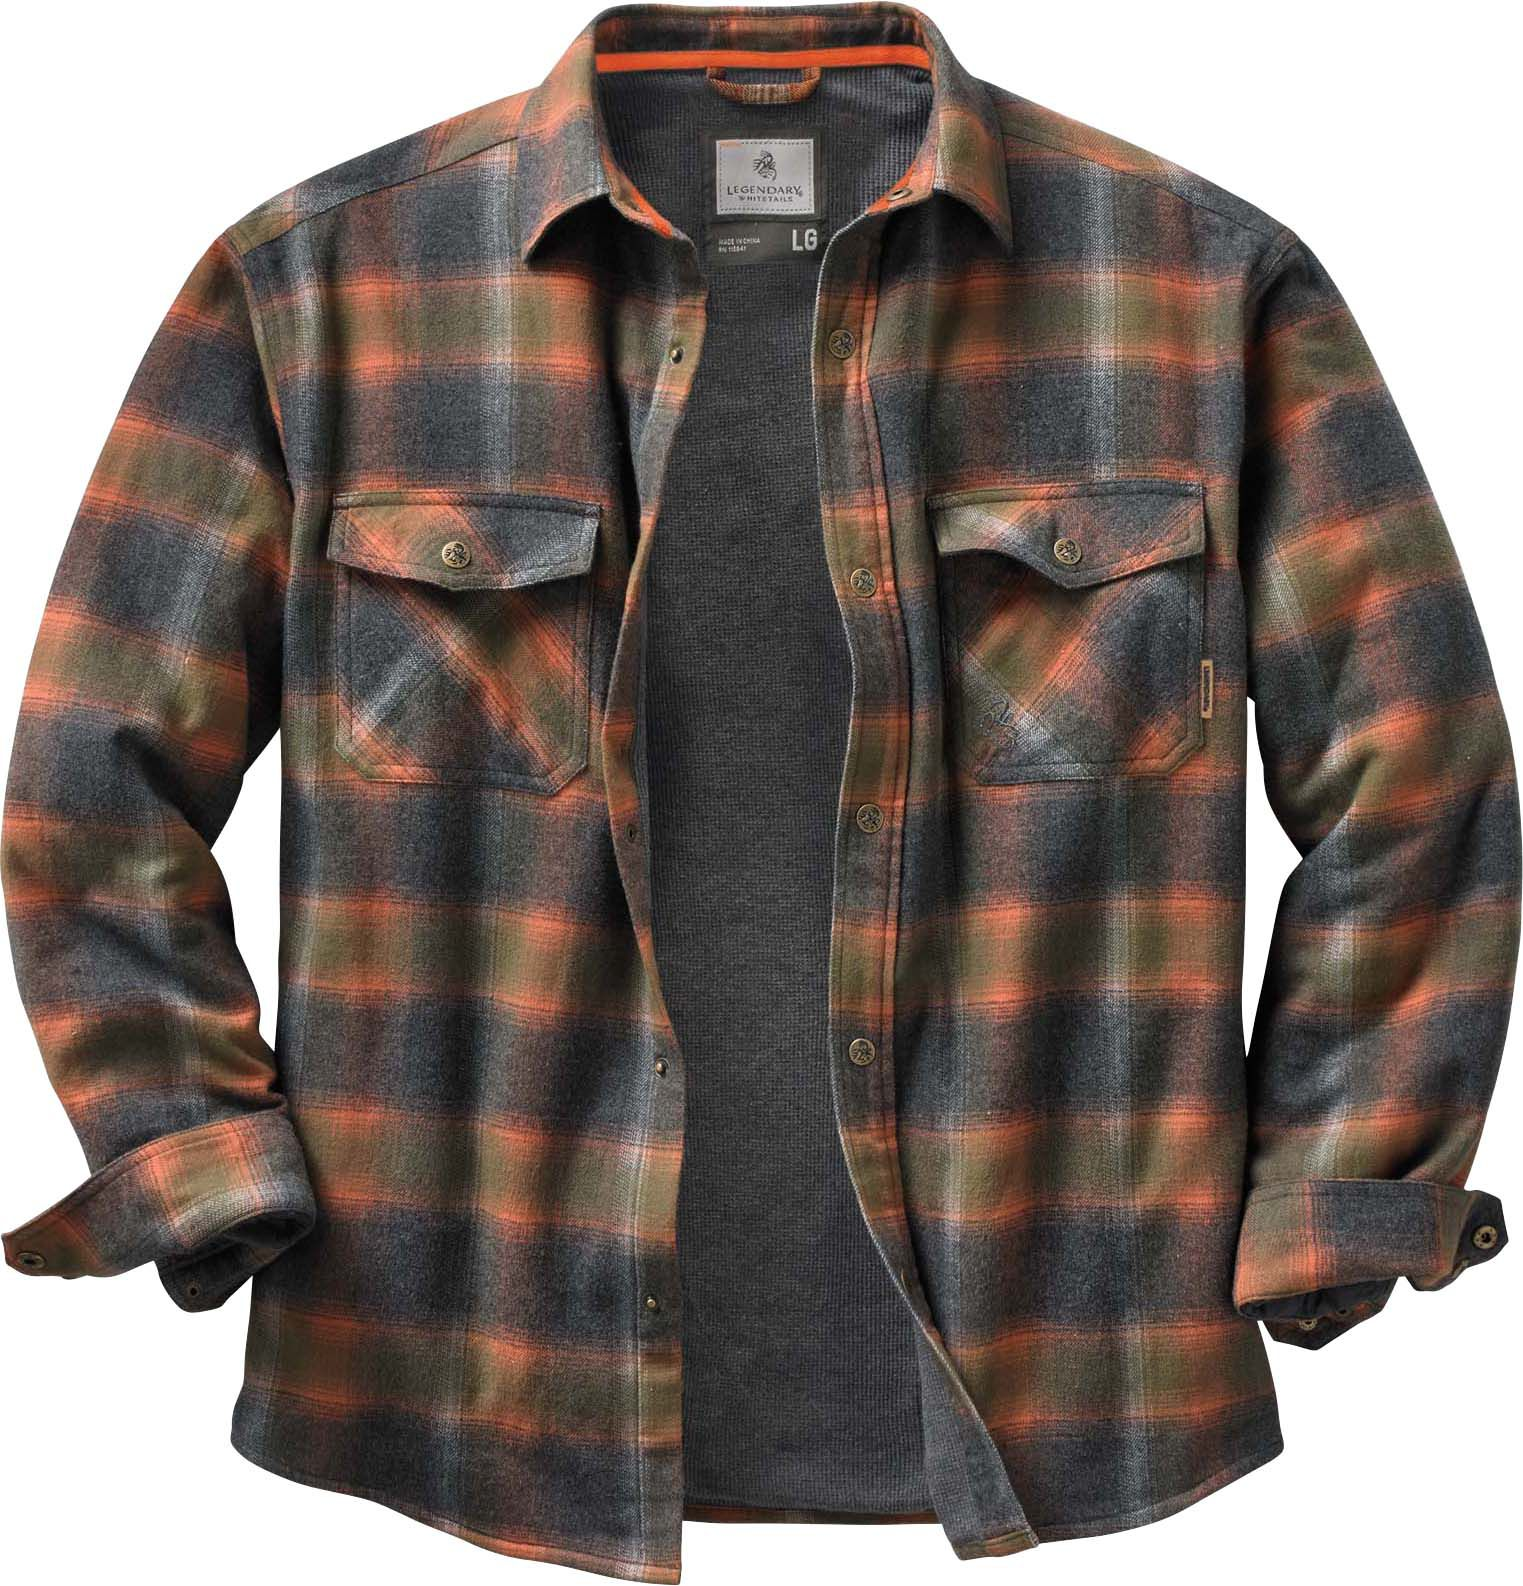 Mens plaid quilted jacket